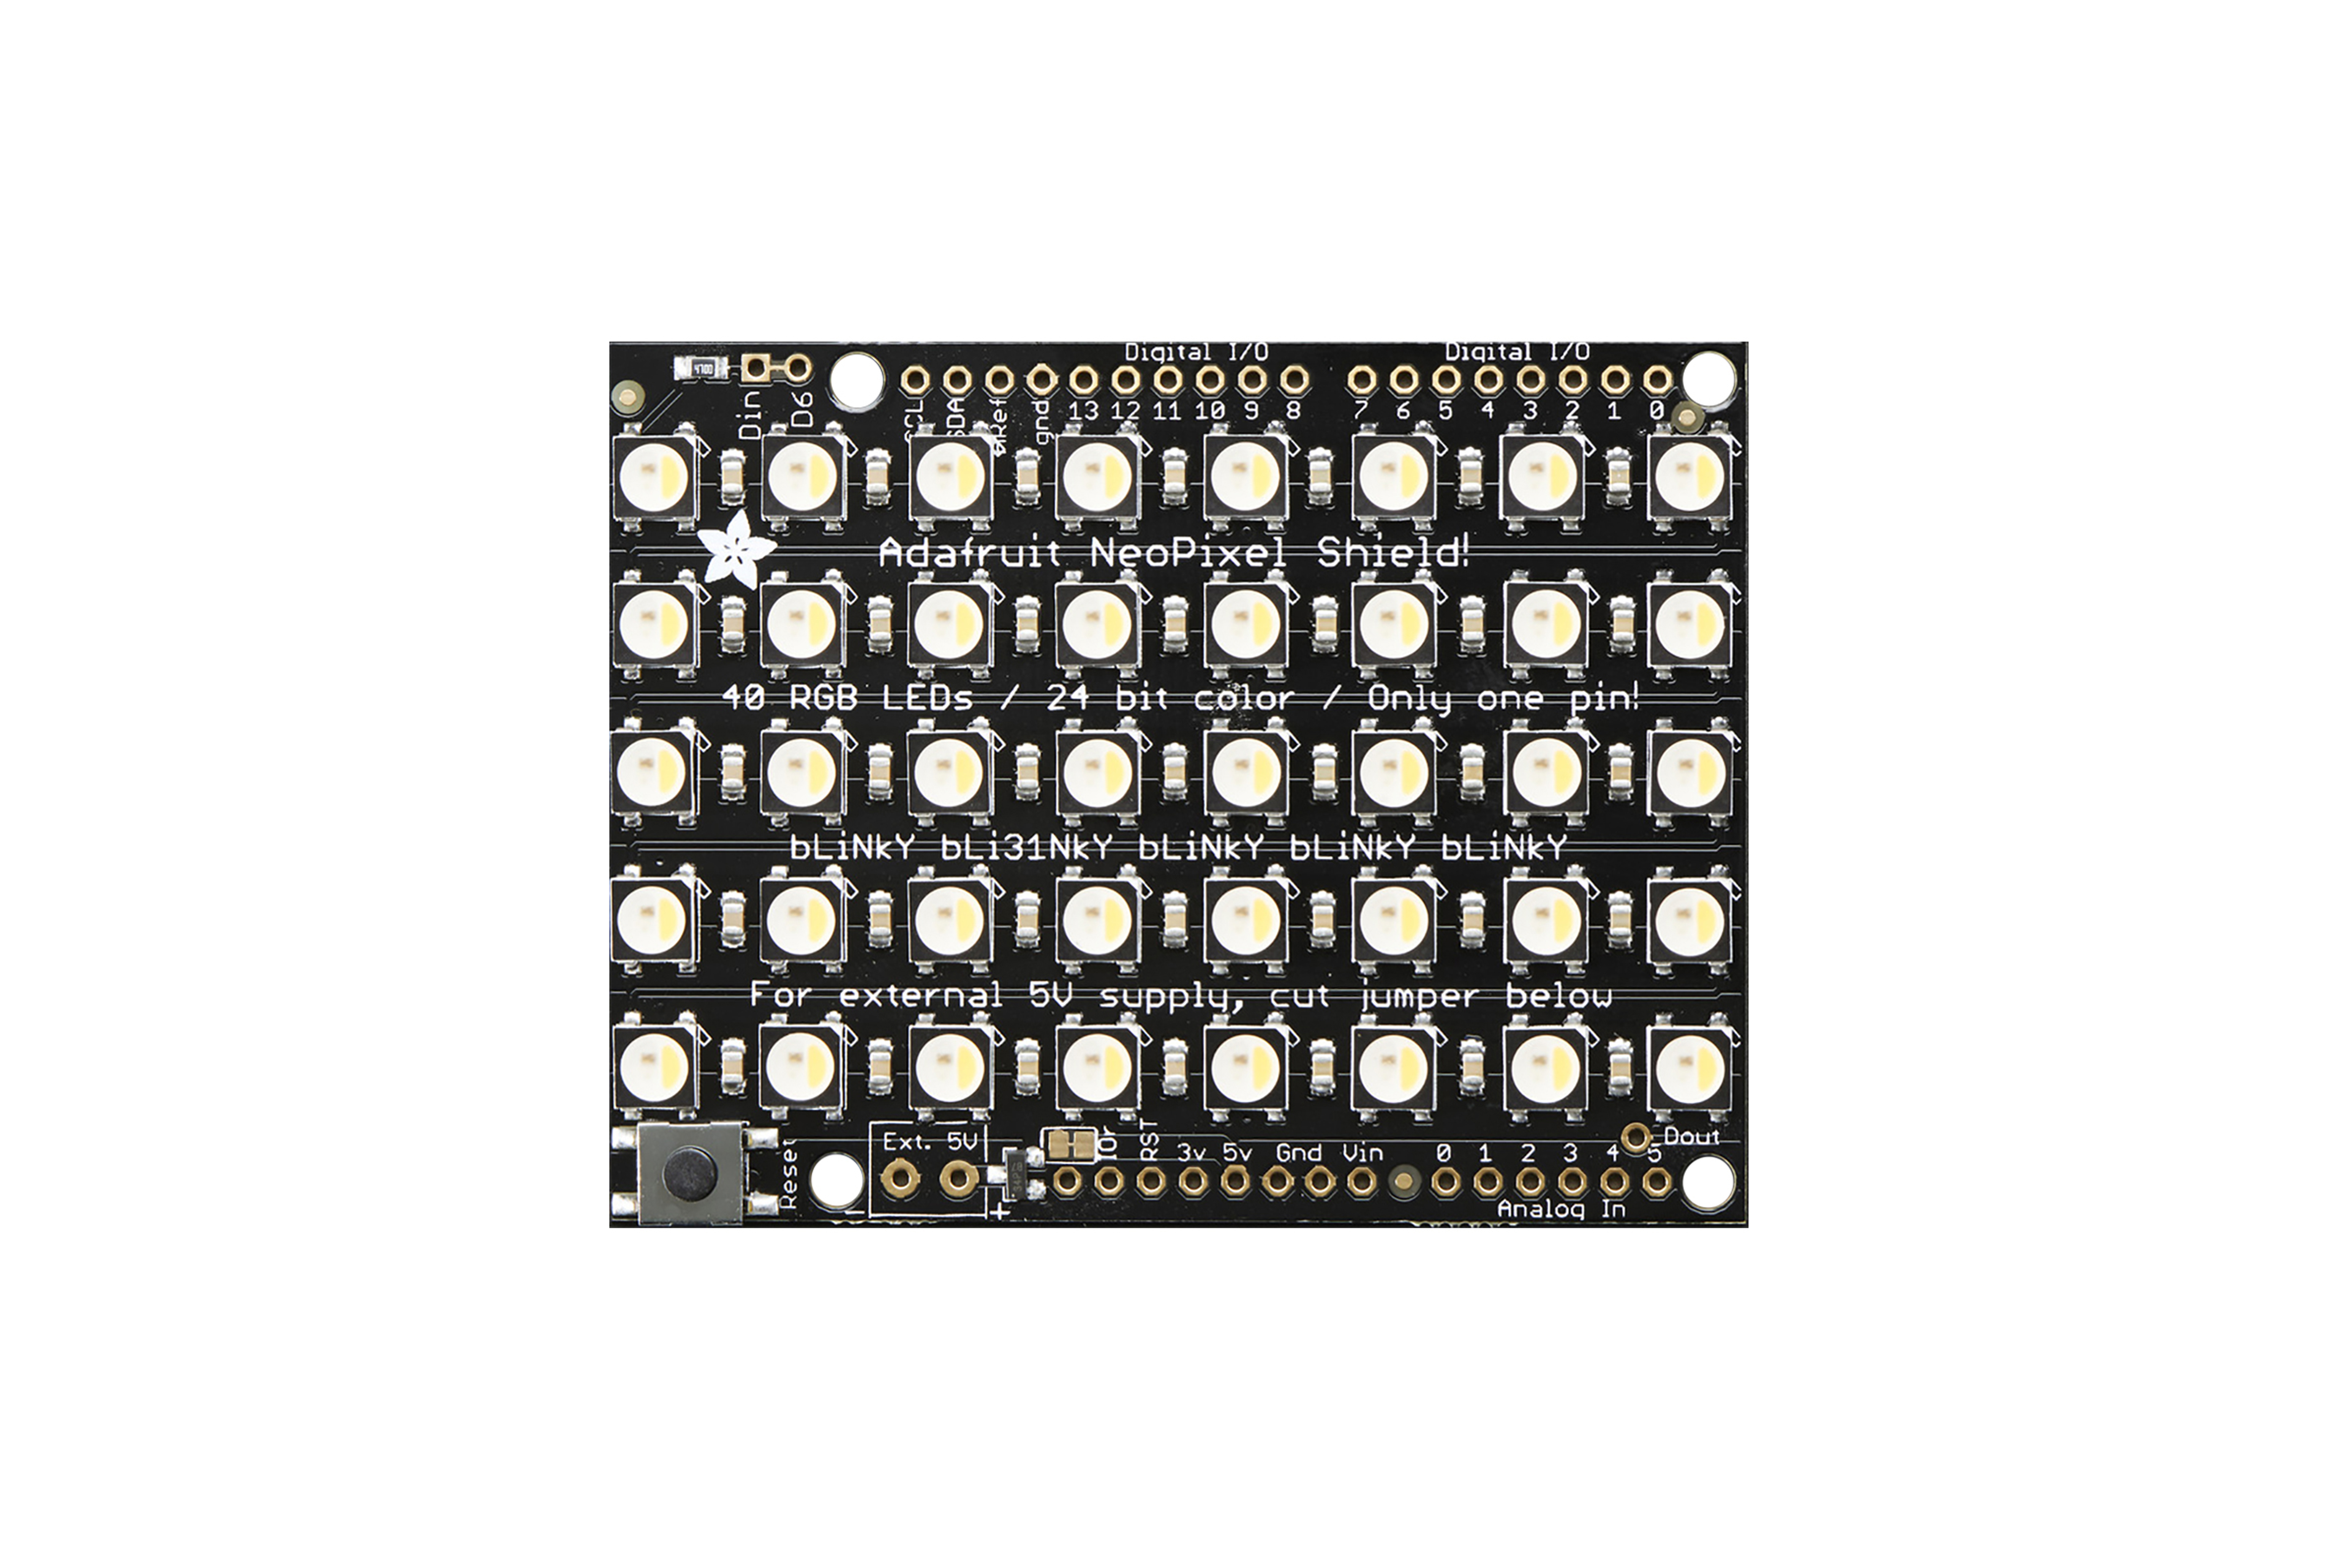 PROTECTION NEOPIXEL 40 RGBW LED PROTECTION 3000K